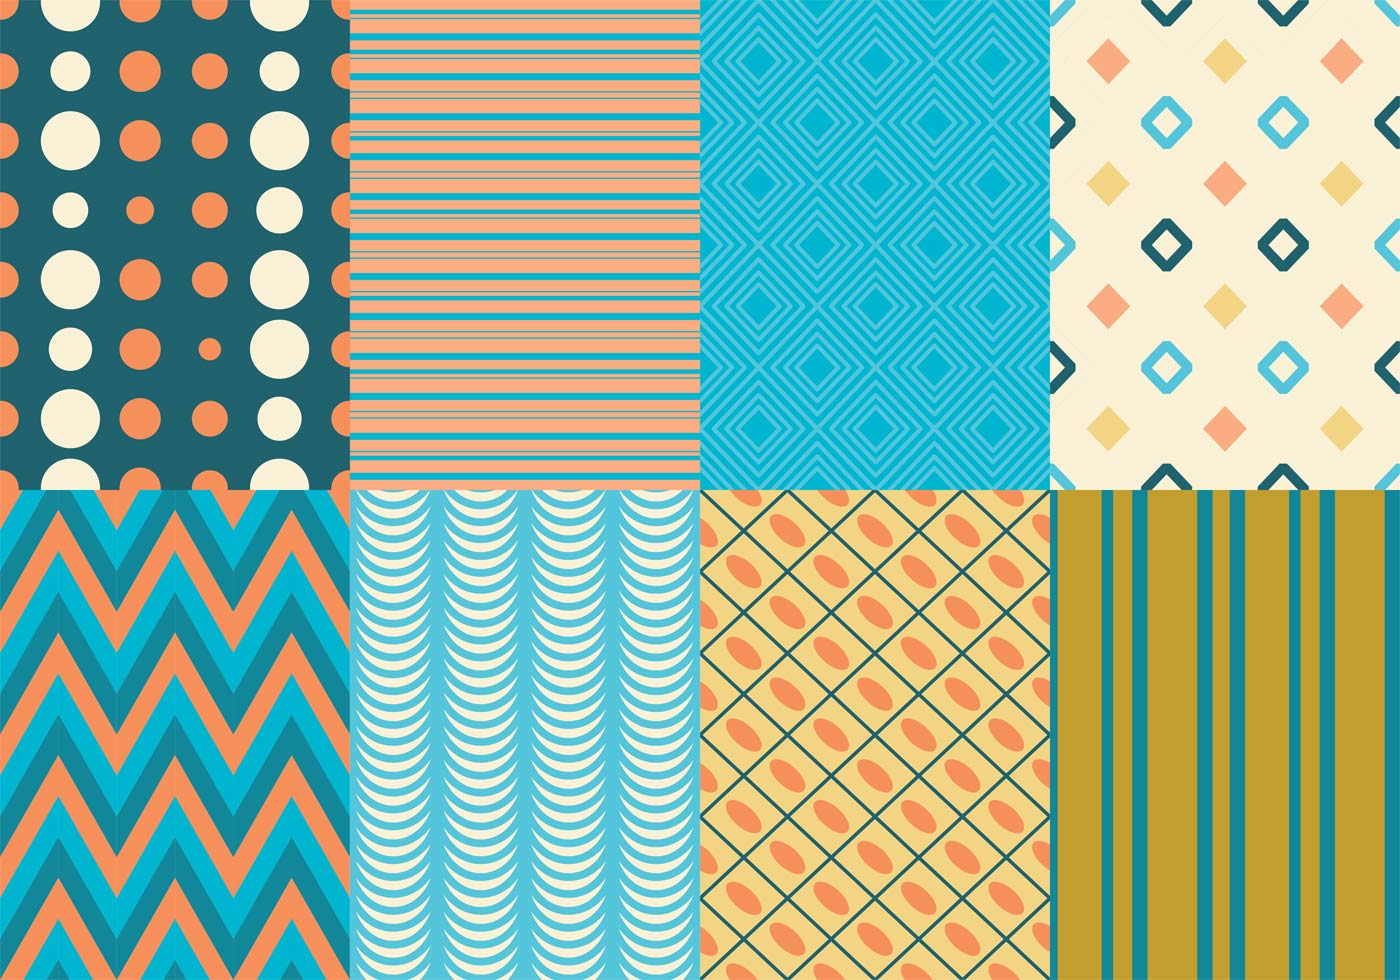 Retro Texture & Pattern Pack - Download Free Vector Art ... Vintage Shape Template